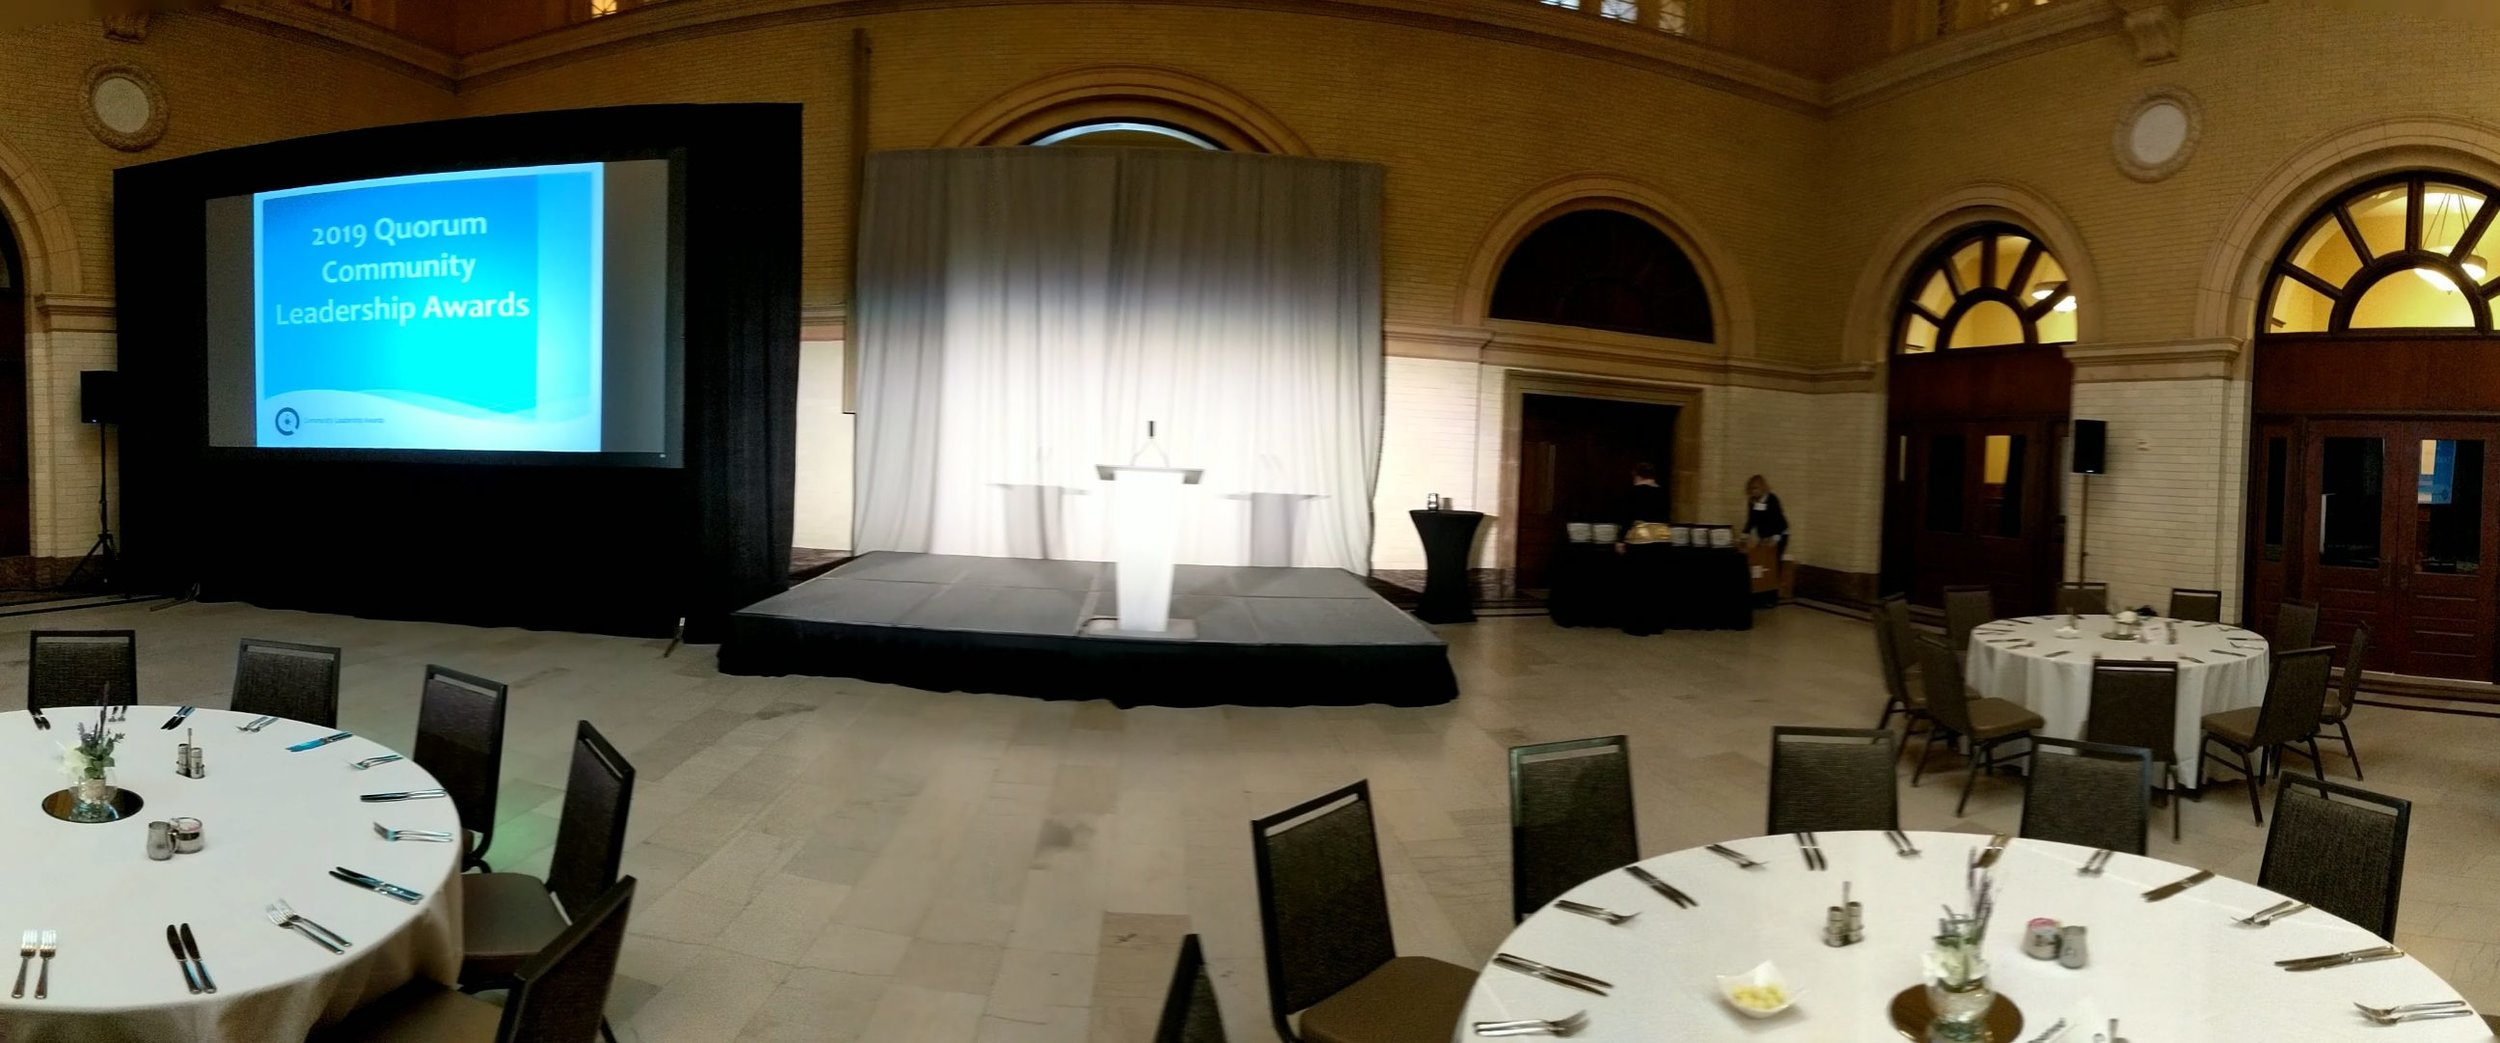 Picture of AV for You Rental Equipment for an Awards Show at The Depot in Minneapolis